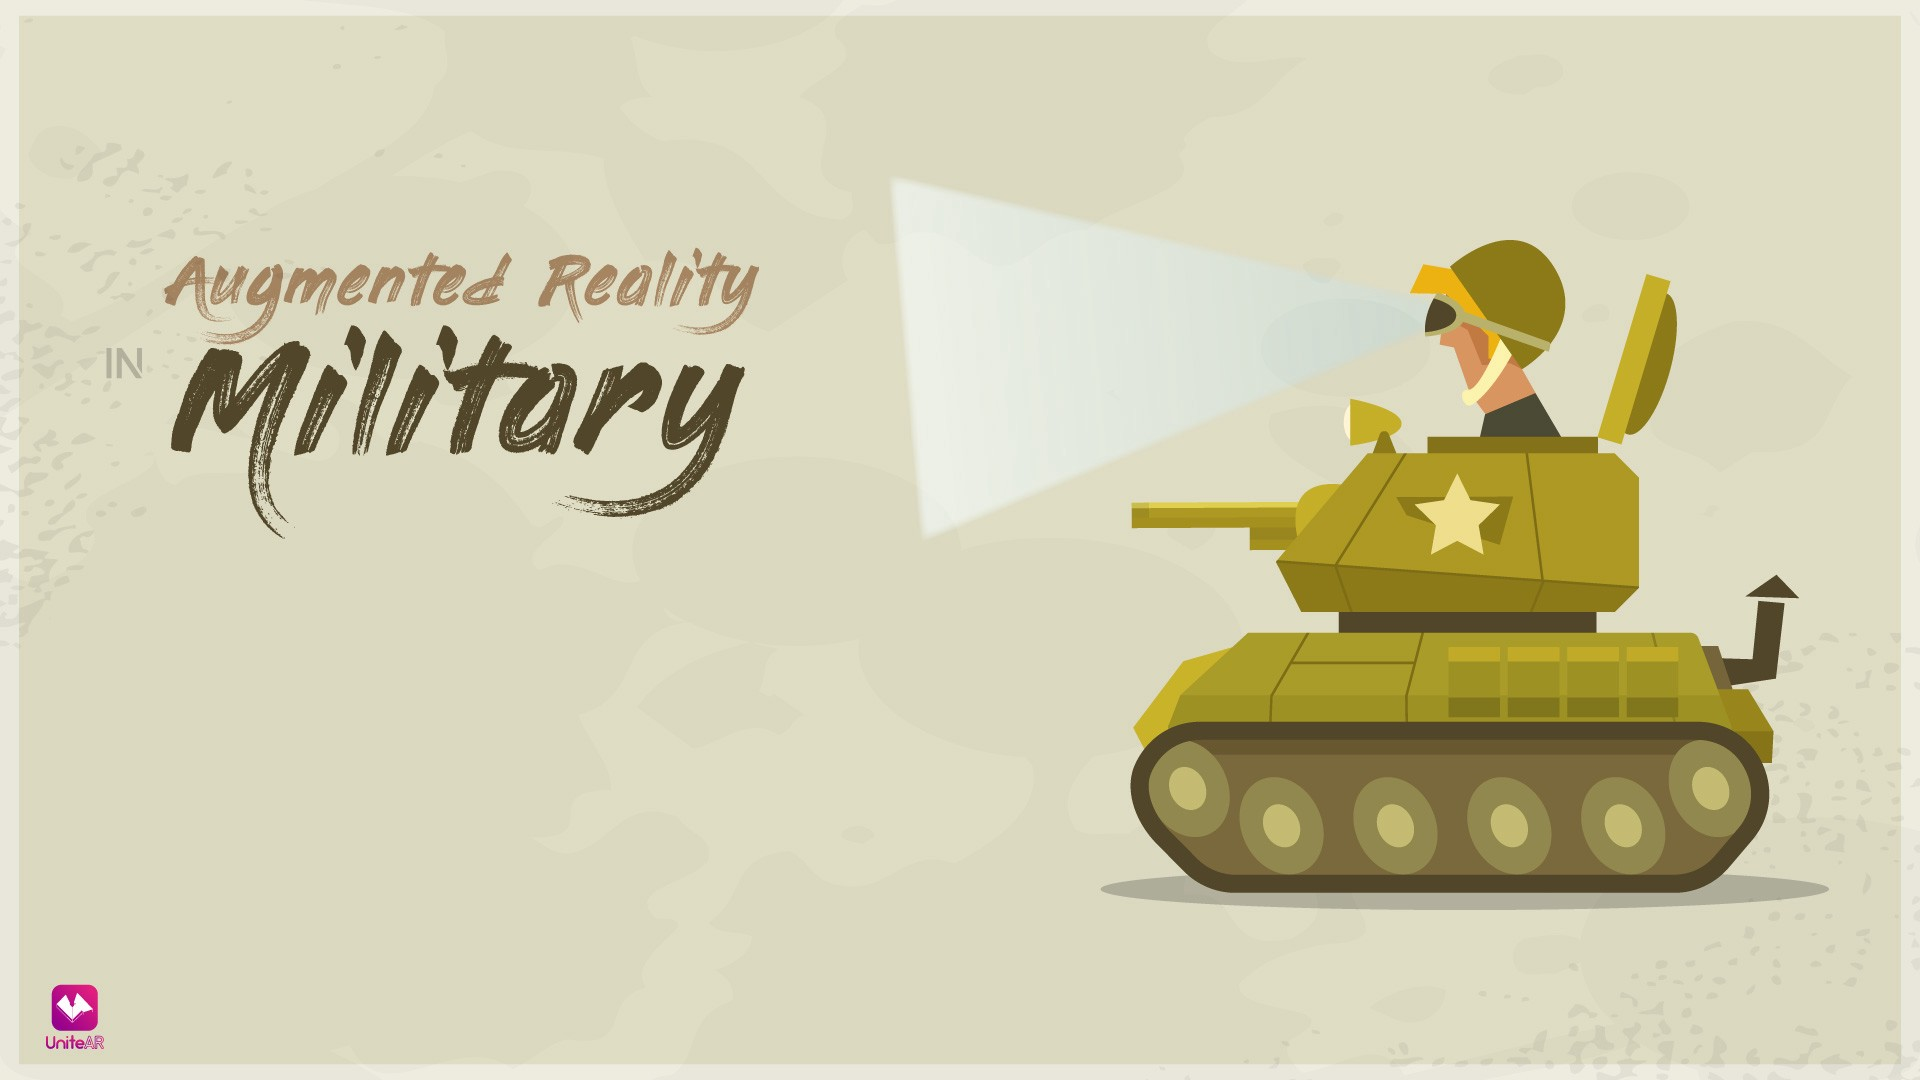 Augmented Reality in Military - iBoson Innovations - Medium